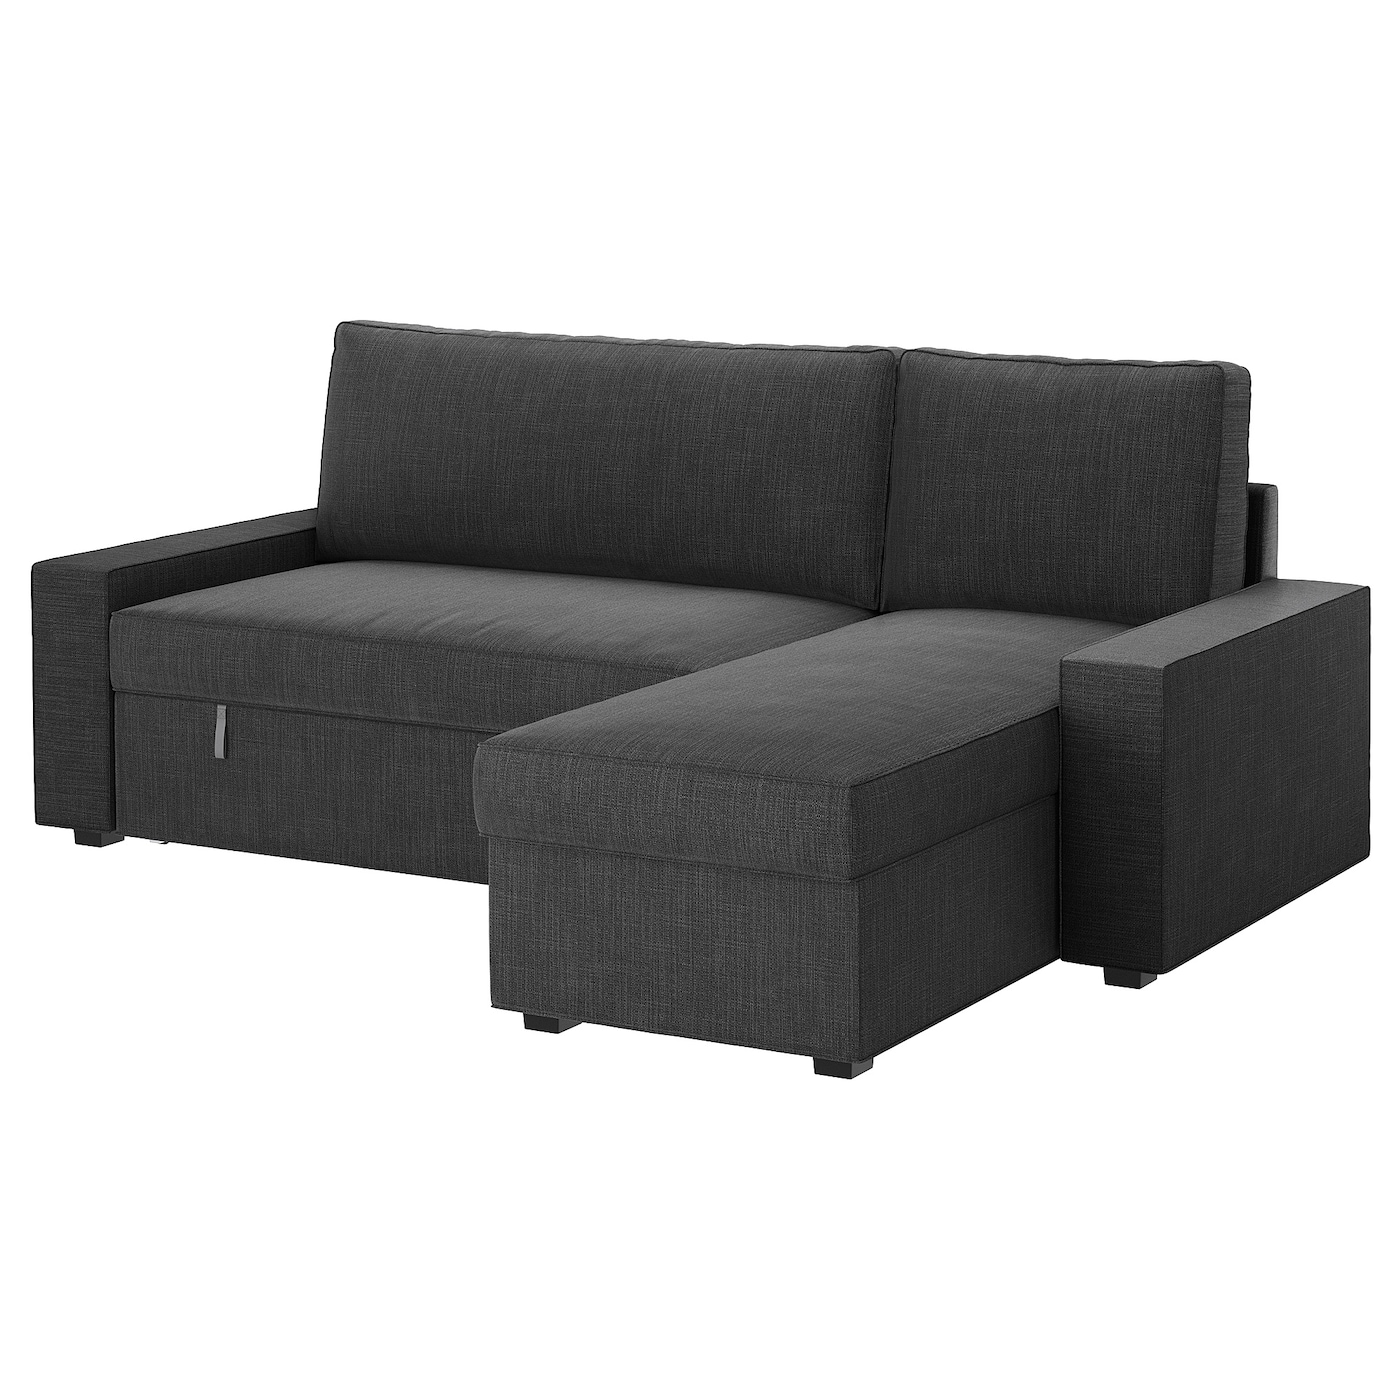 Vilasund sofa bed with chaise longue hillared anthracite for Chaise longue sofa cama